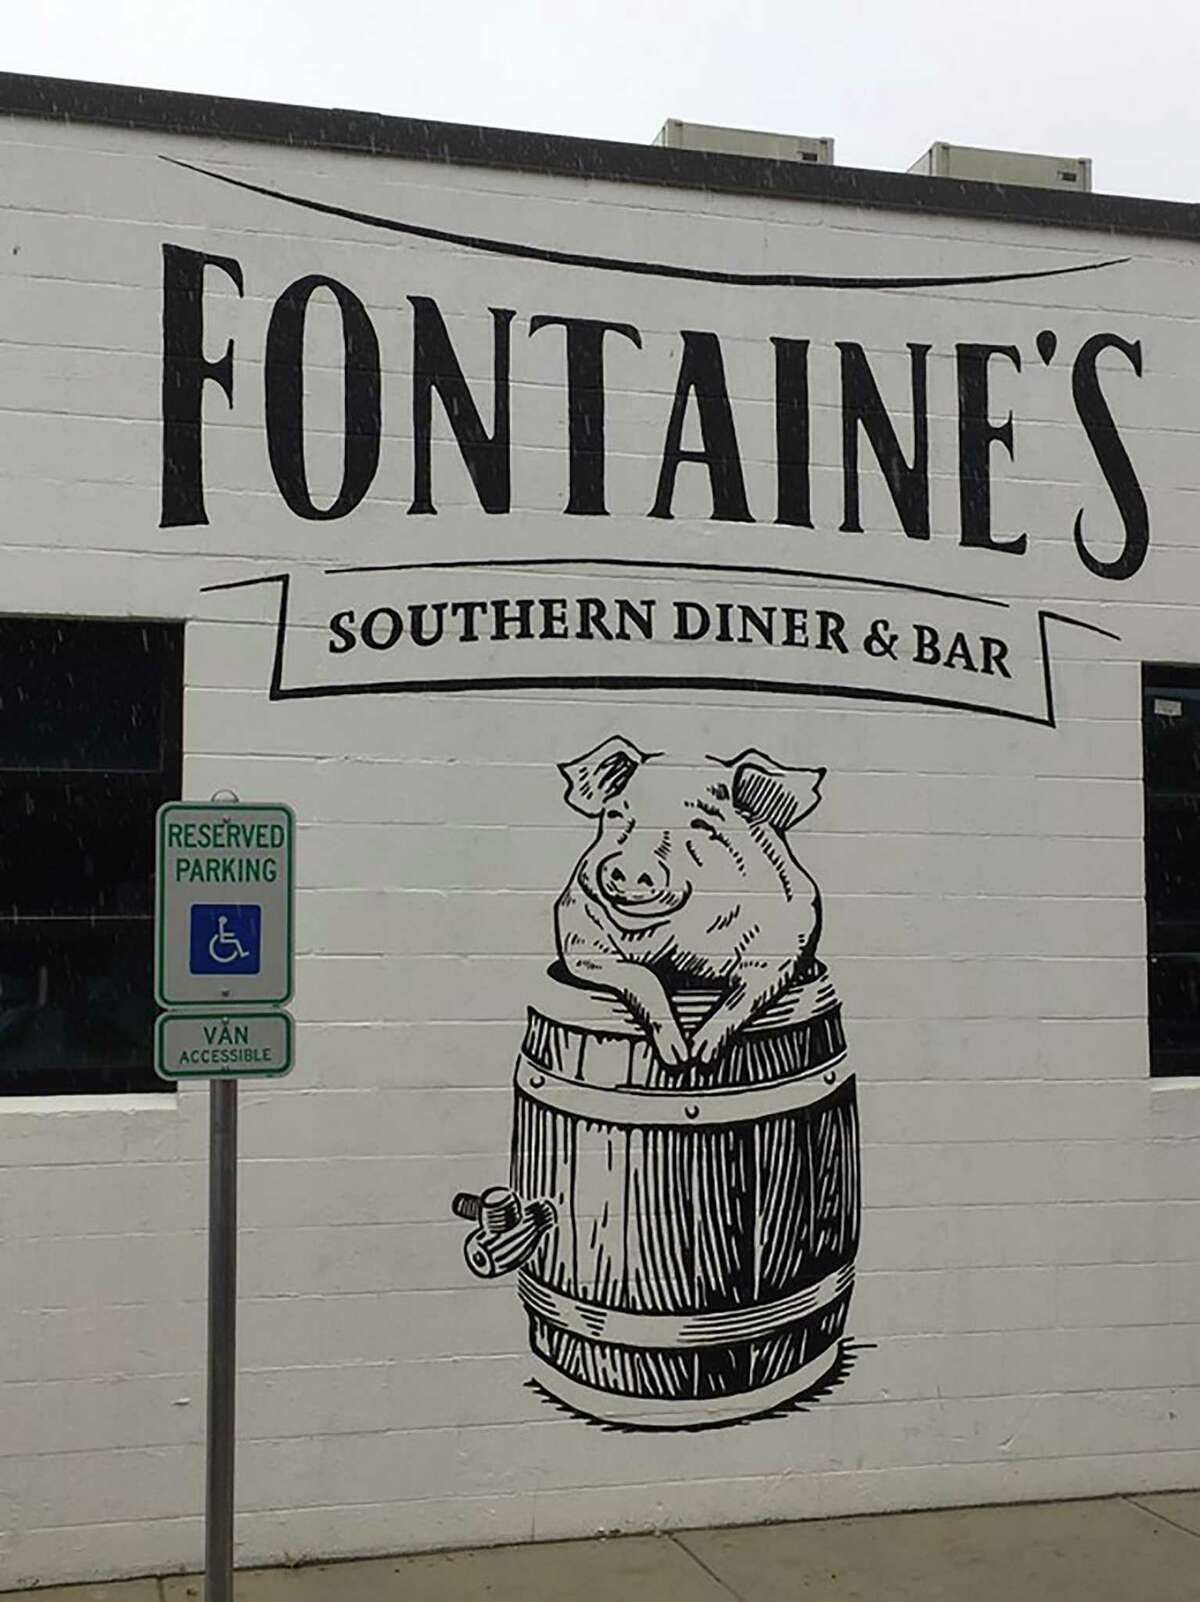 Fontaine's Souther Diner & Bar is a new project by chef/owner Tim Rattray at the intersection of North Saint Mary's and East Elmira streets that is set to open soon.